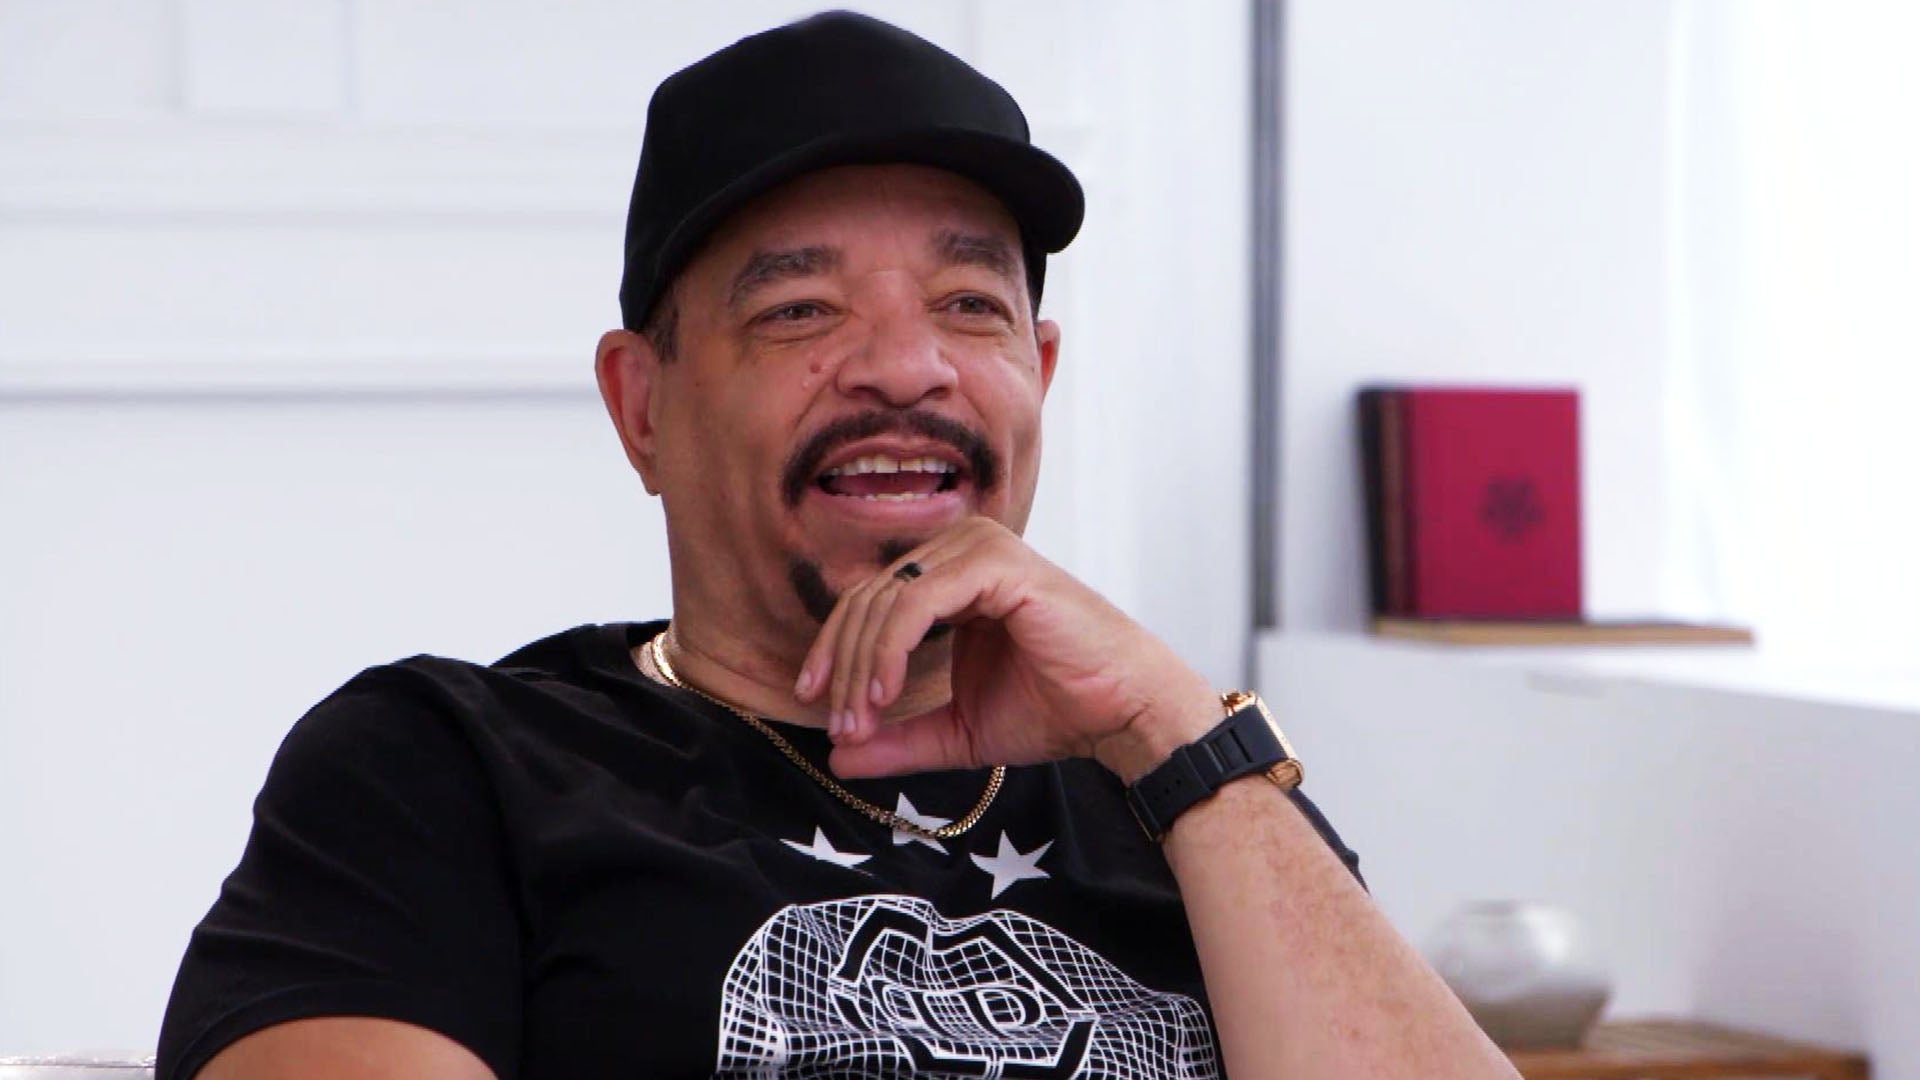 Ice-T Details His Past Robberies of Banks and Jewelry Stores: 'I Wouldn't Advise It' (Exclusive)